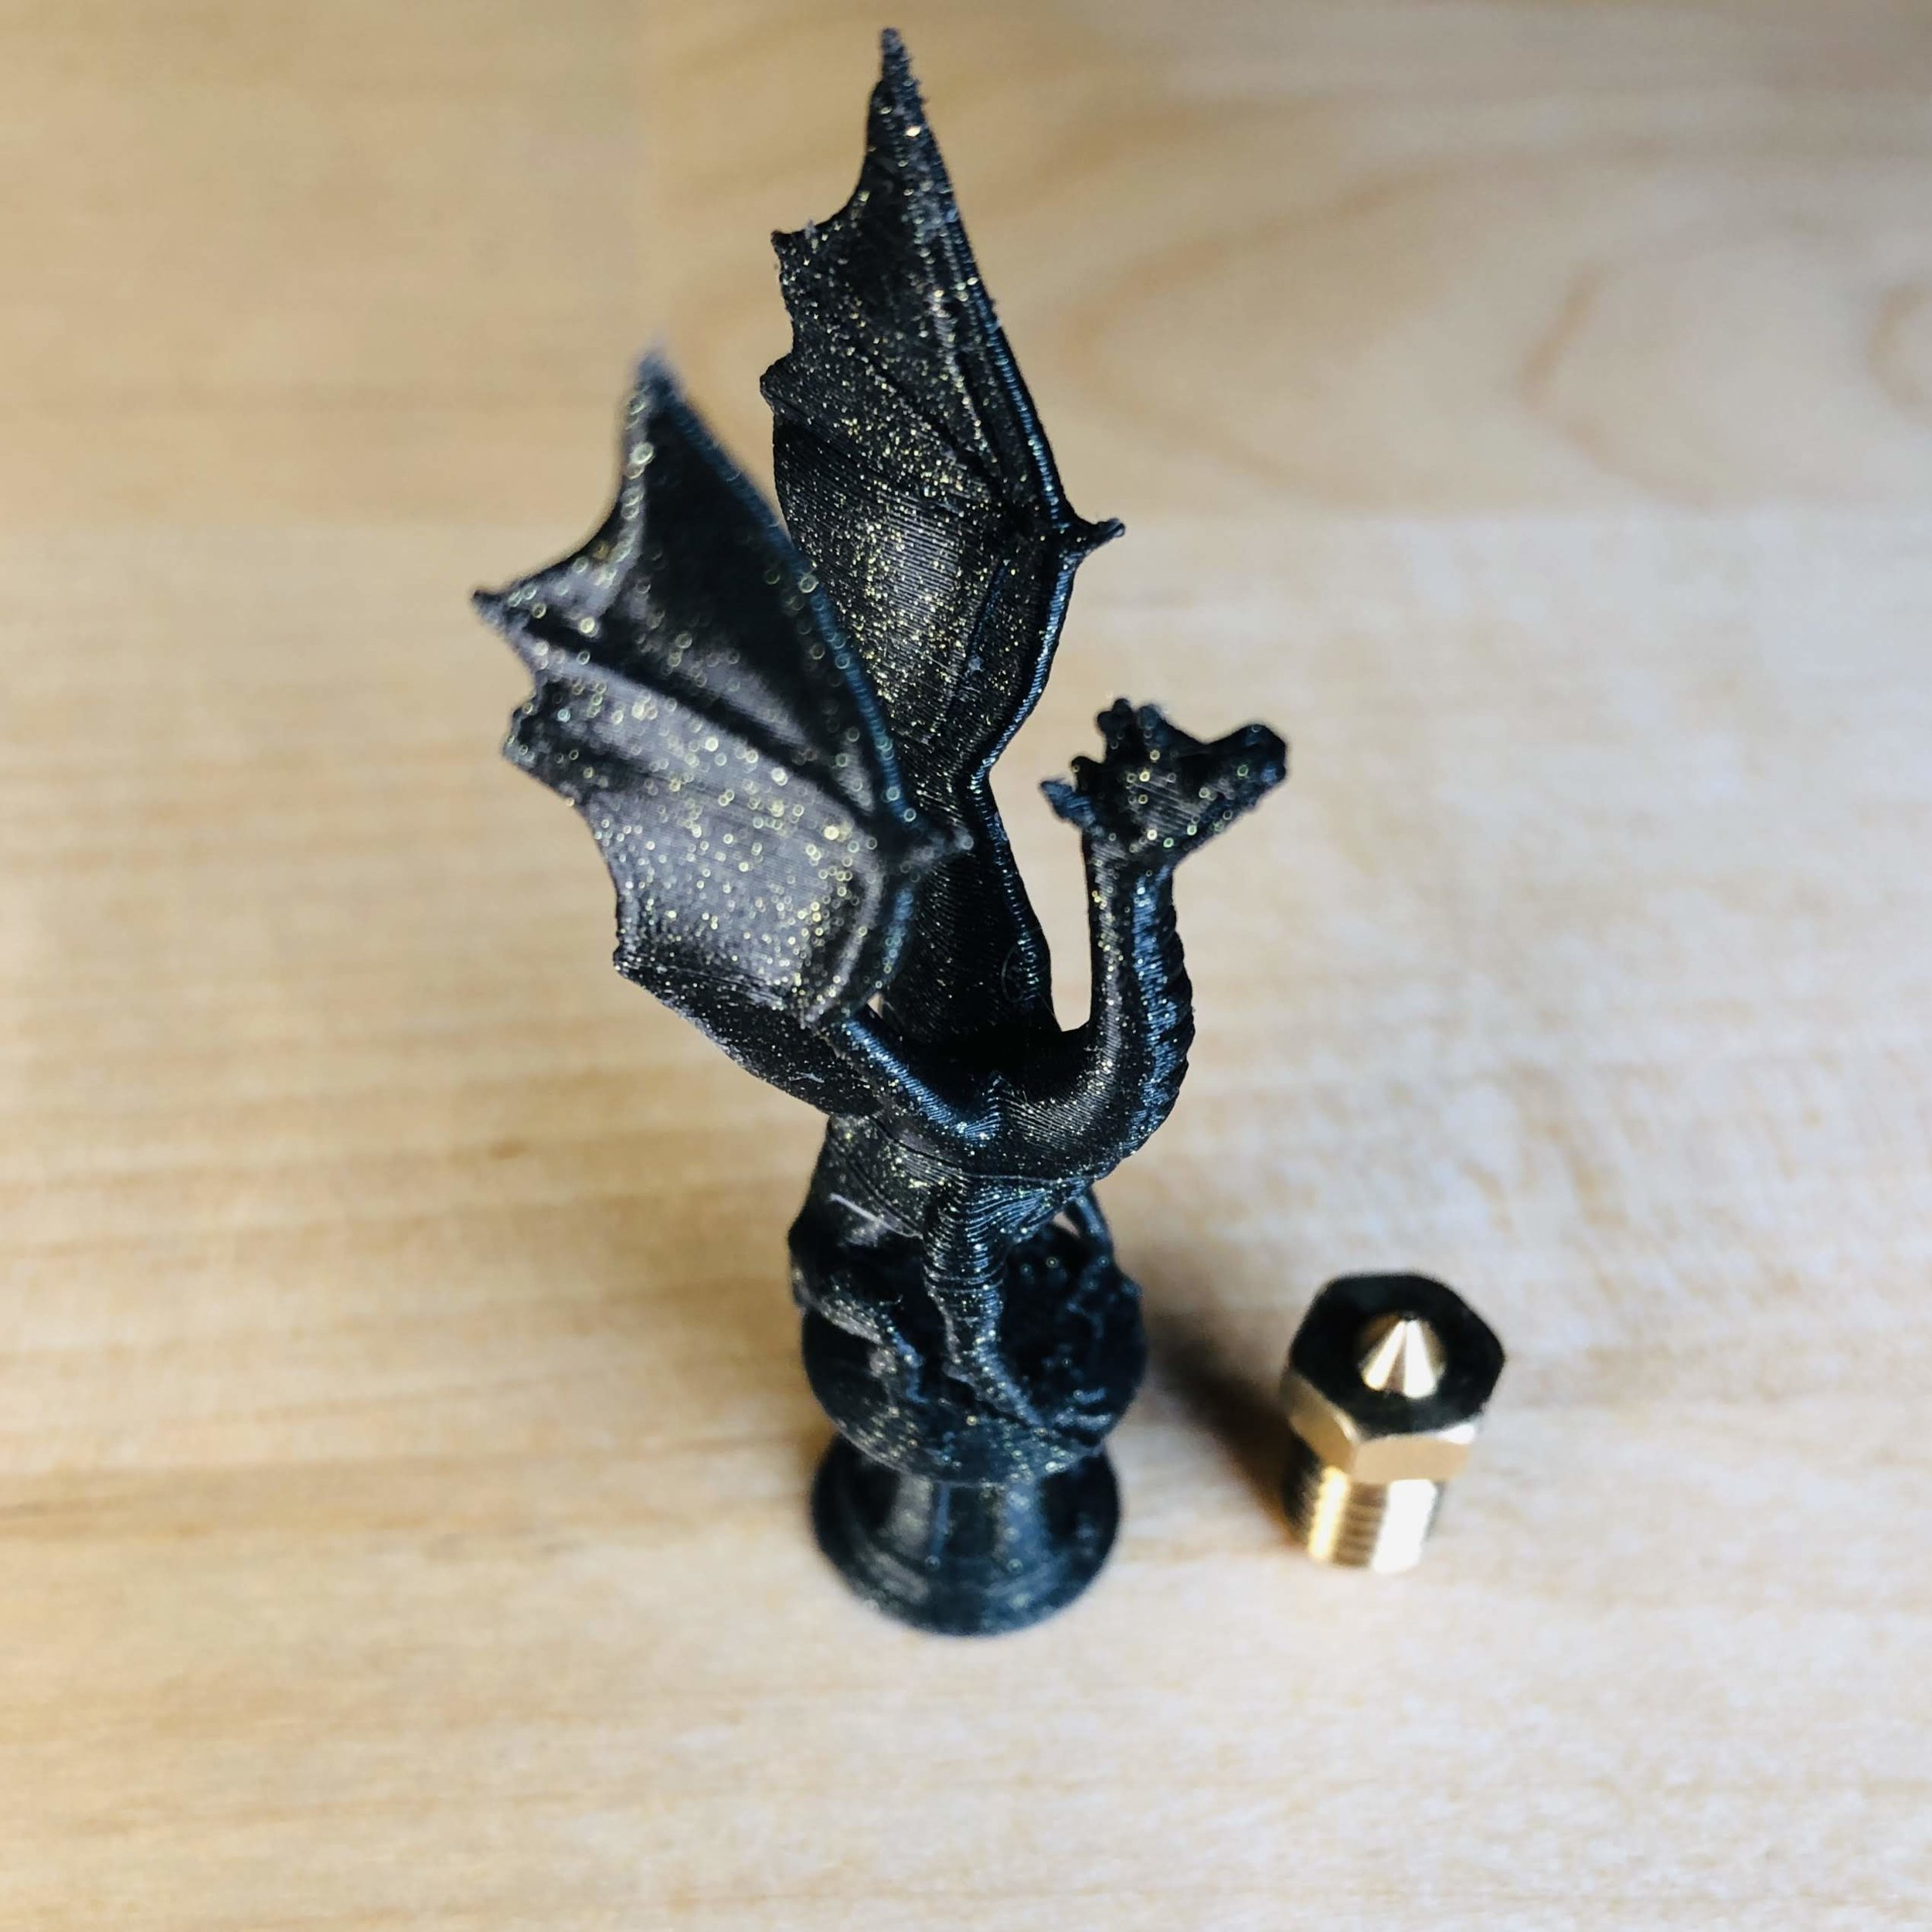 This little one doesn't have anything to do with this blog post other than it was printed on the Nautilus using the high-res B 250 Tool Cartridge and we wanted to share it! Designed by Thingivers user  loubie  and printed with  Fillamentum Vertigo Galaxy PLA .